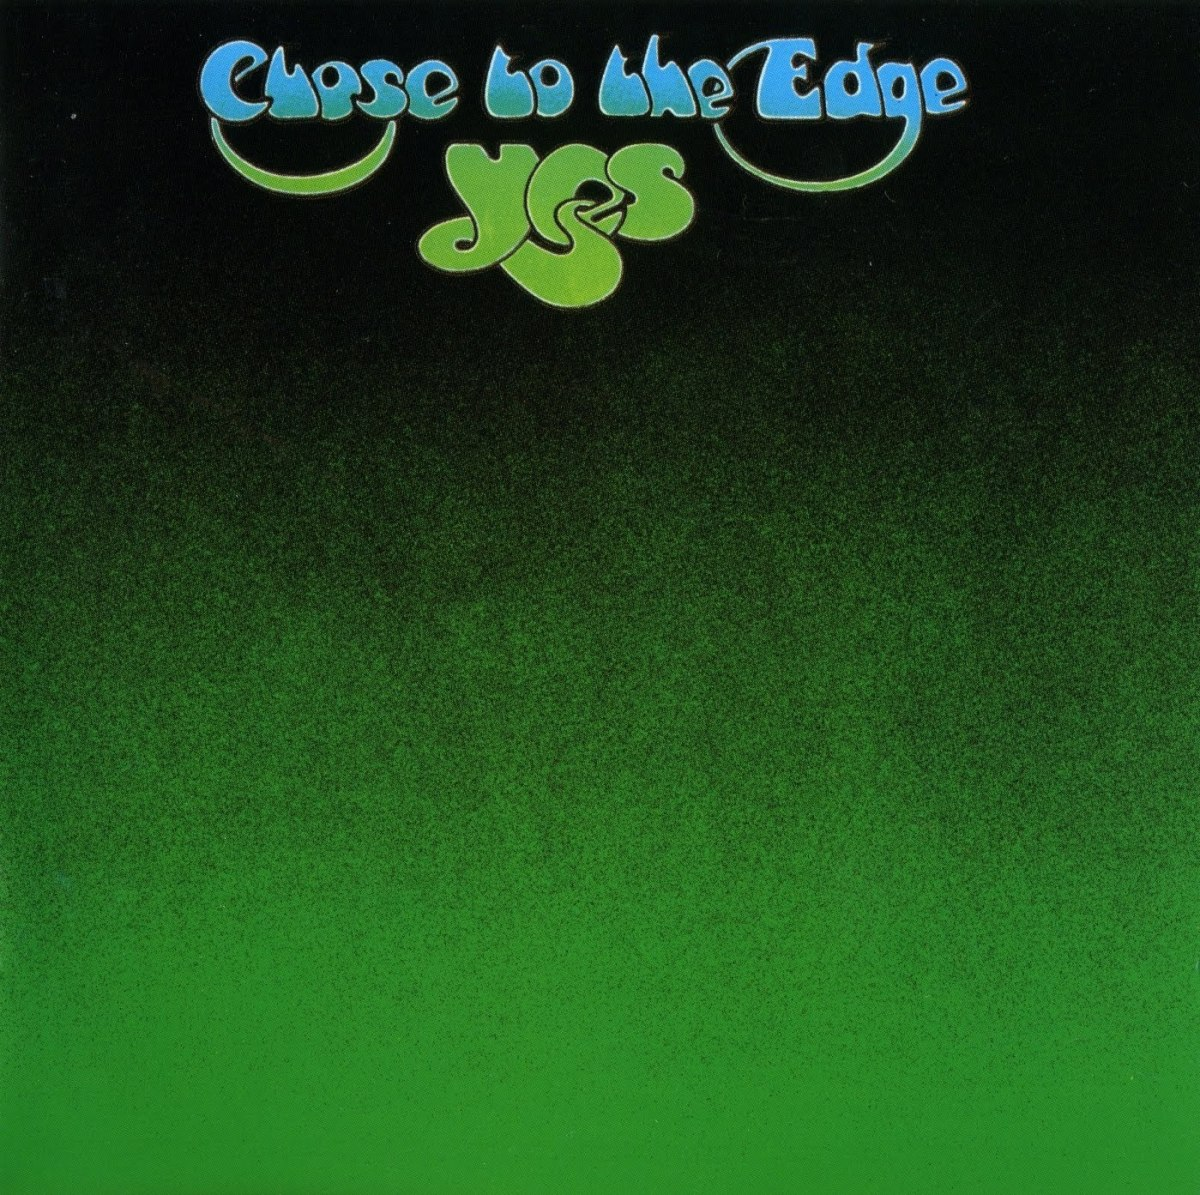 "Yes ""Close To The Edge"" Atlantic Records SD 7244 12"" LP Vinyl Record, US Pressing (1972) Album Cover Art & Design by Roger Dean"